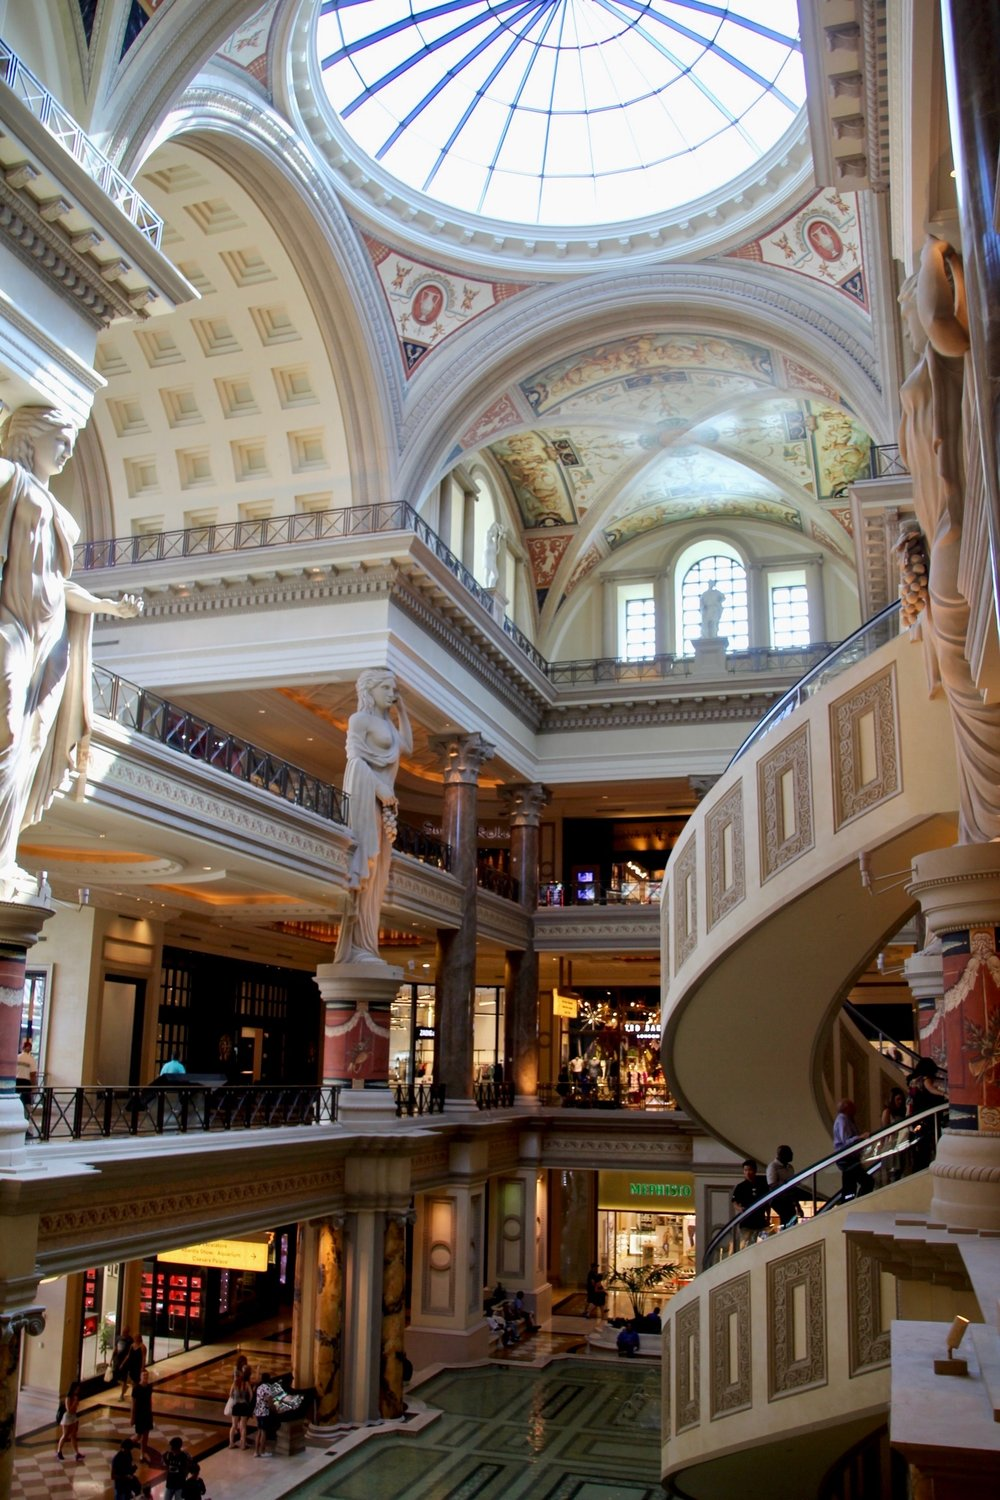 Caesar's Palace - You could spend a day alone just exploring each casino